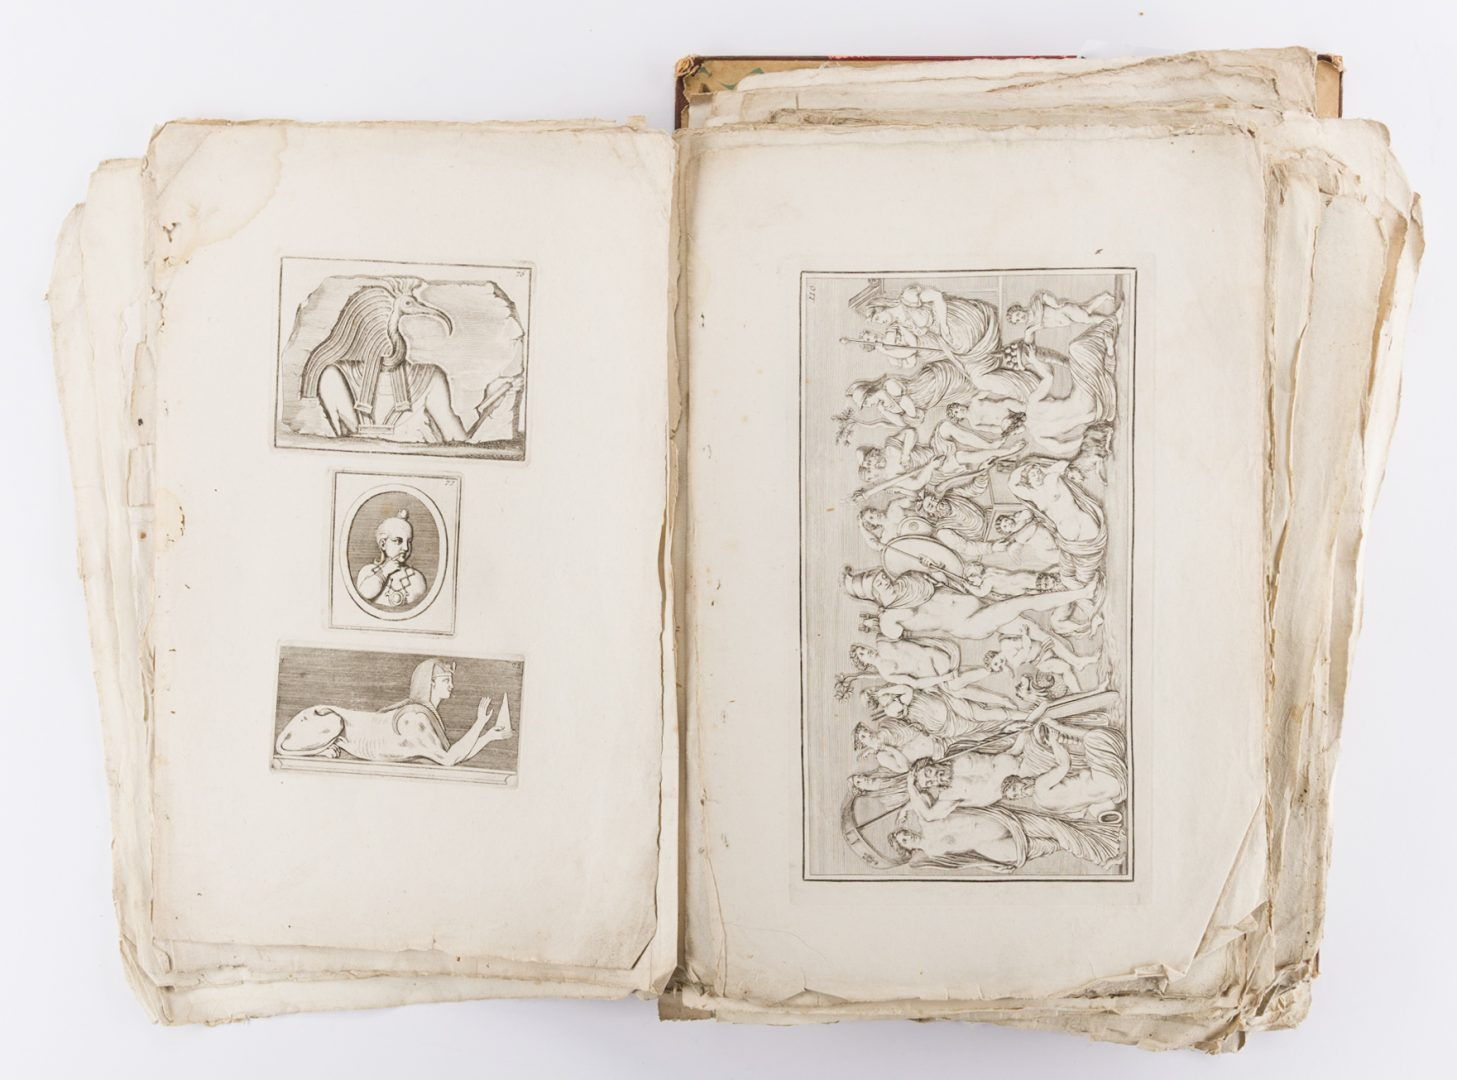 Lot 747: Early Italian Engravings, Winckelmann